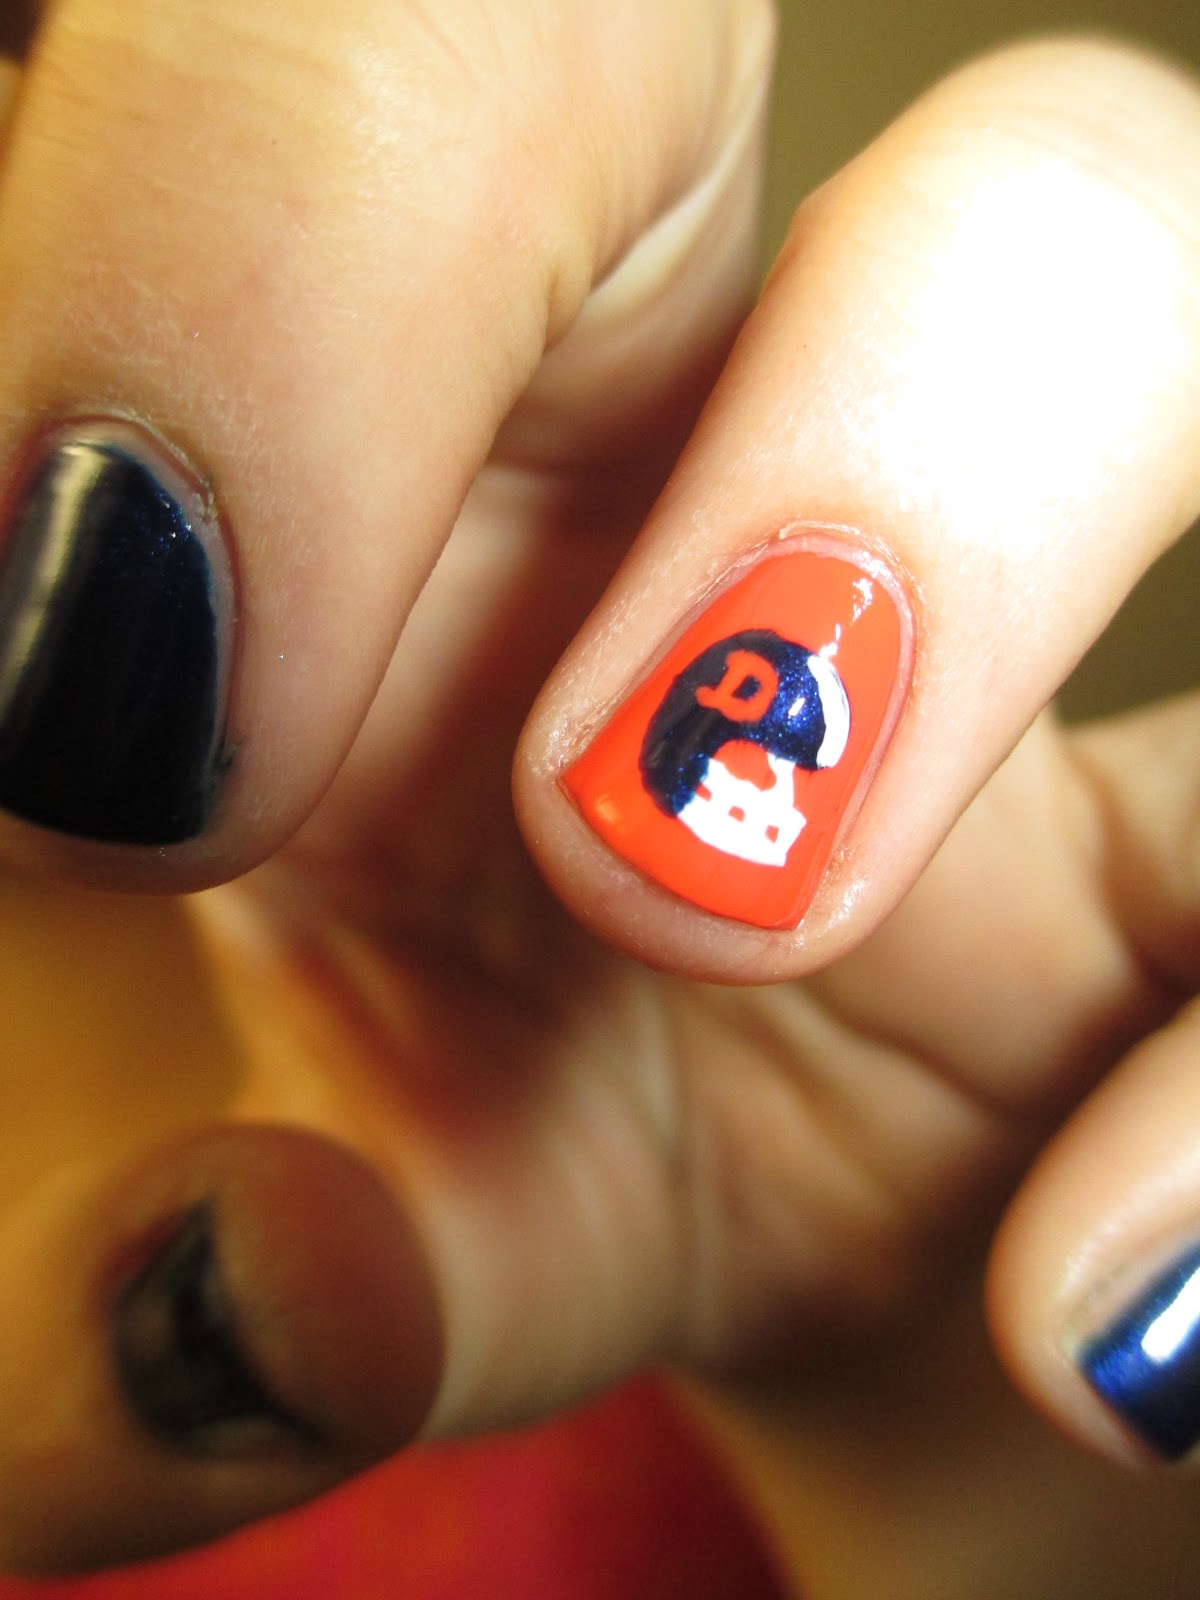 Denver broncos nail art designs broncos nail art designs nfl nail decals ebay prinsesfo Gallery